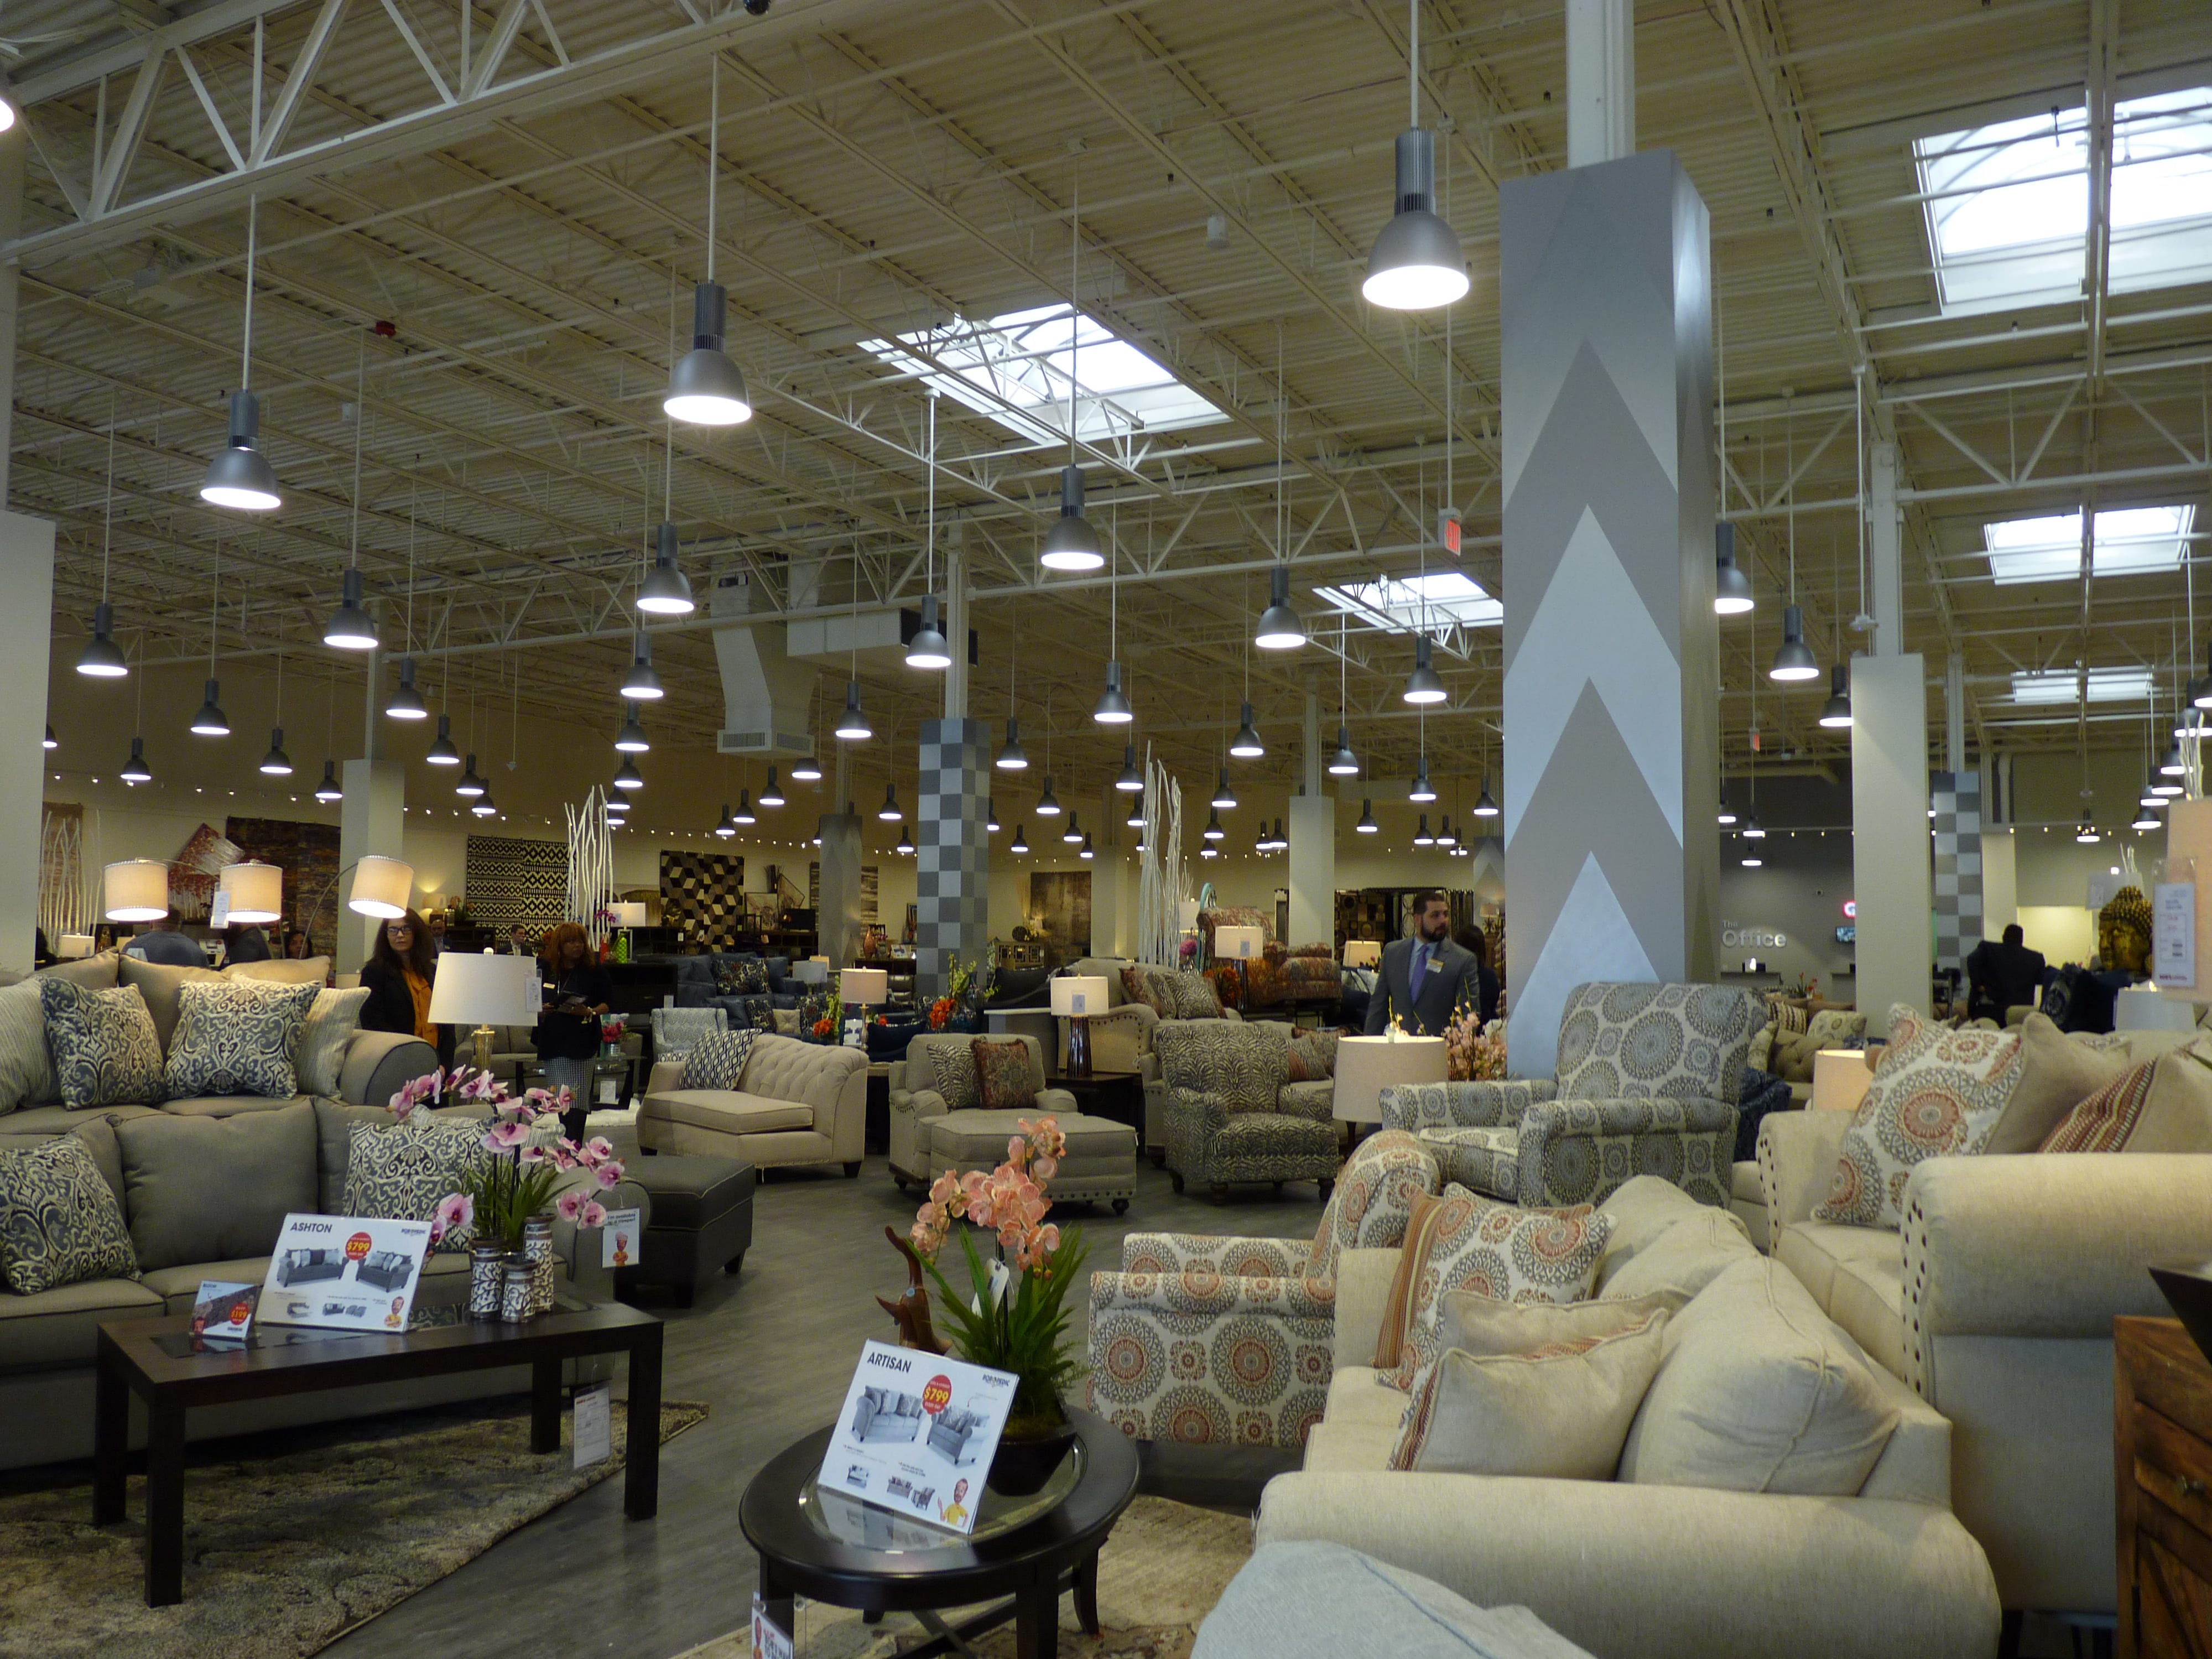 Bob's Discount Furniture held a grand opening ribbon-cutting ceremony for its new location at the Bridgewater Promenade on Saturday, March 2.